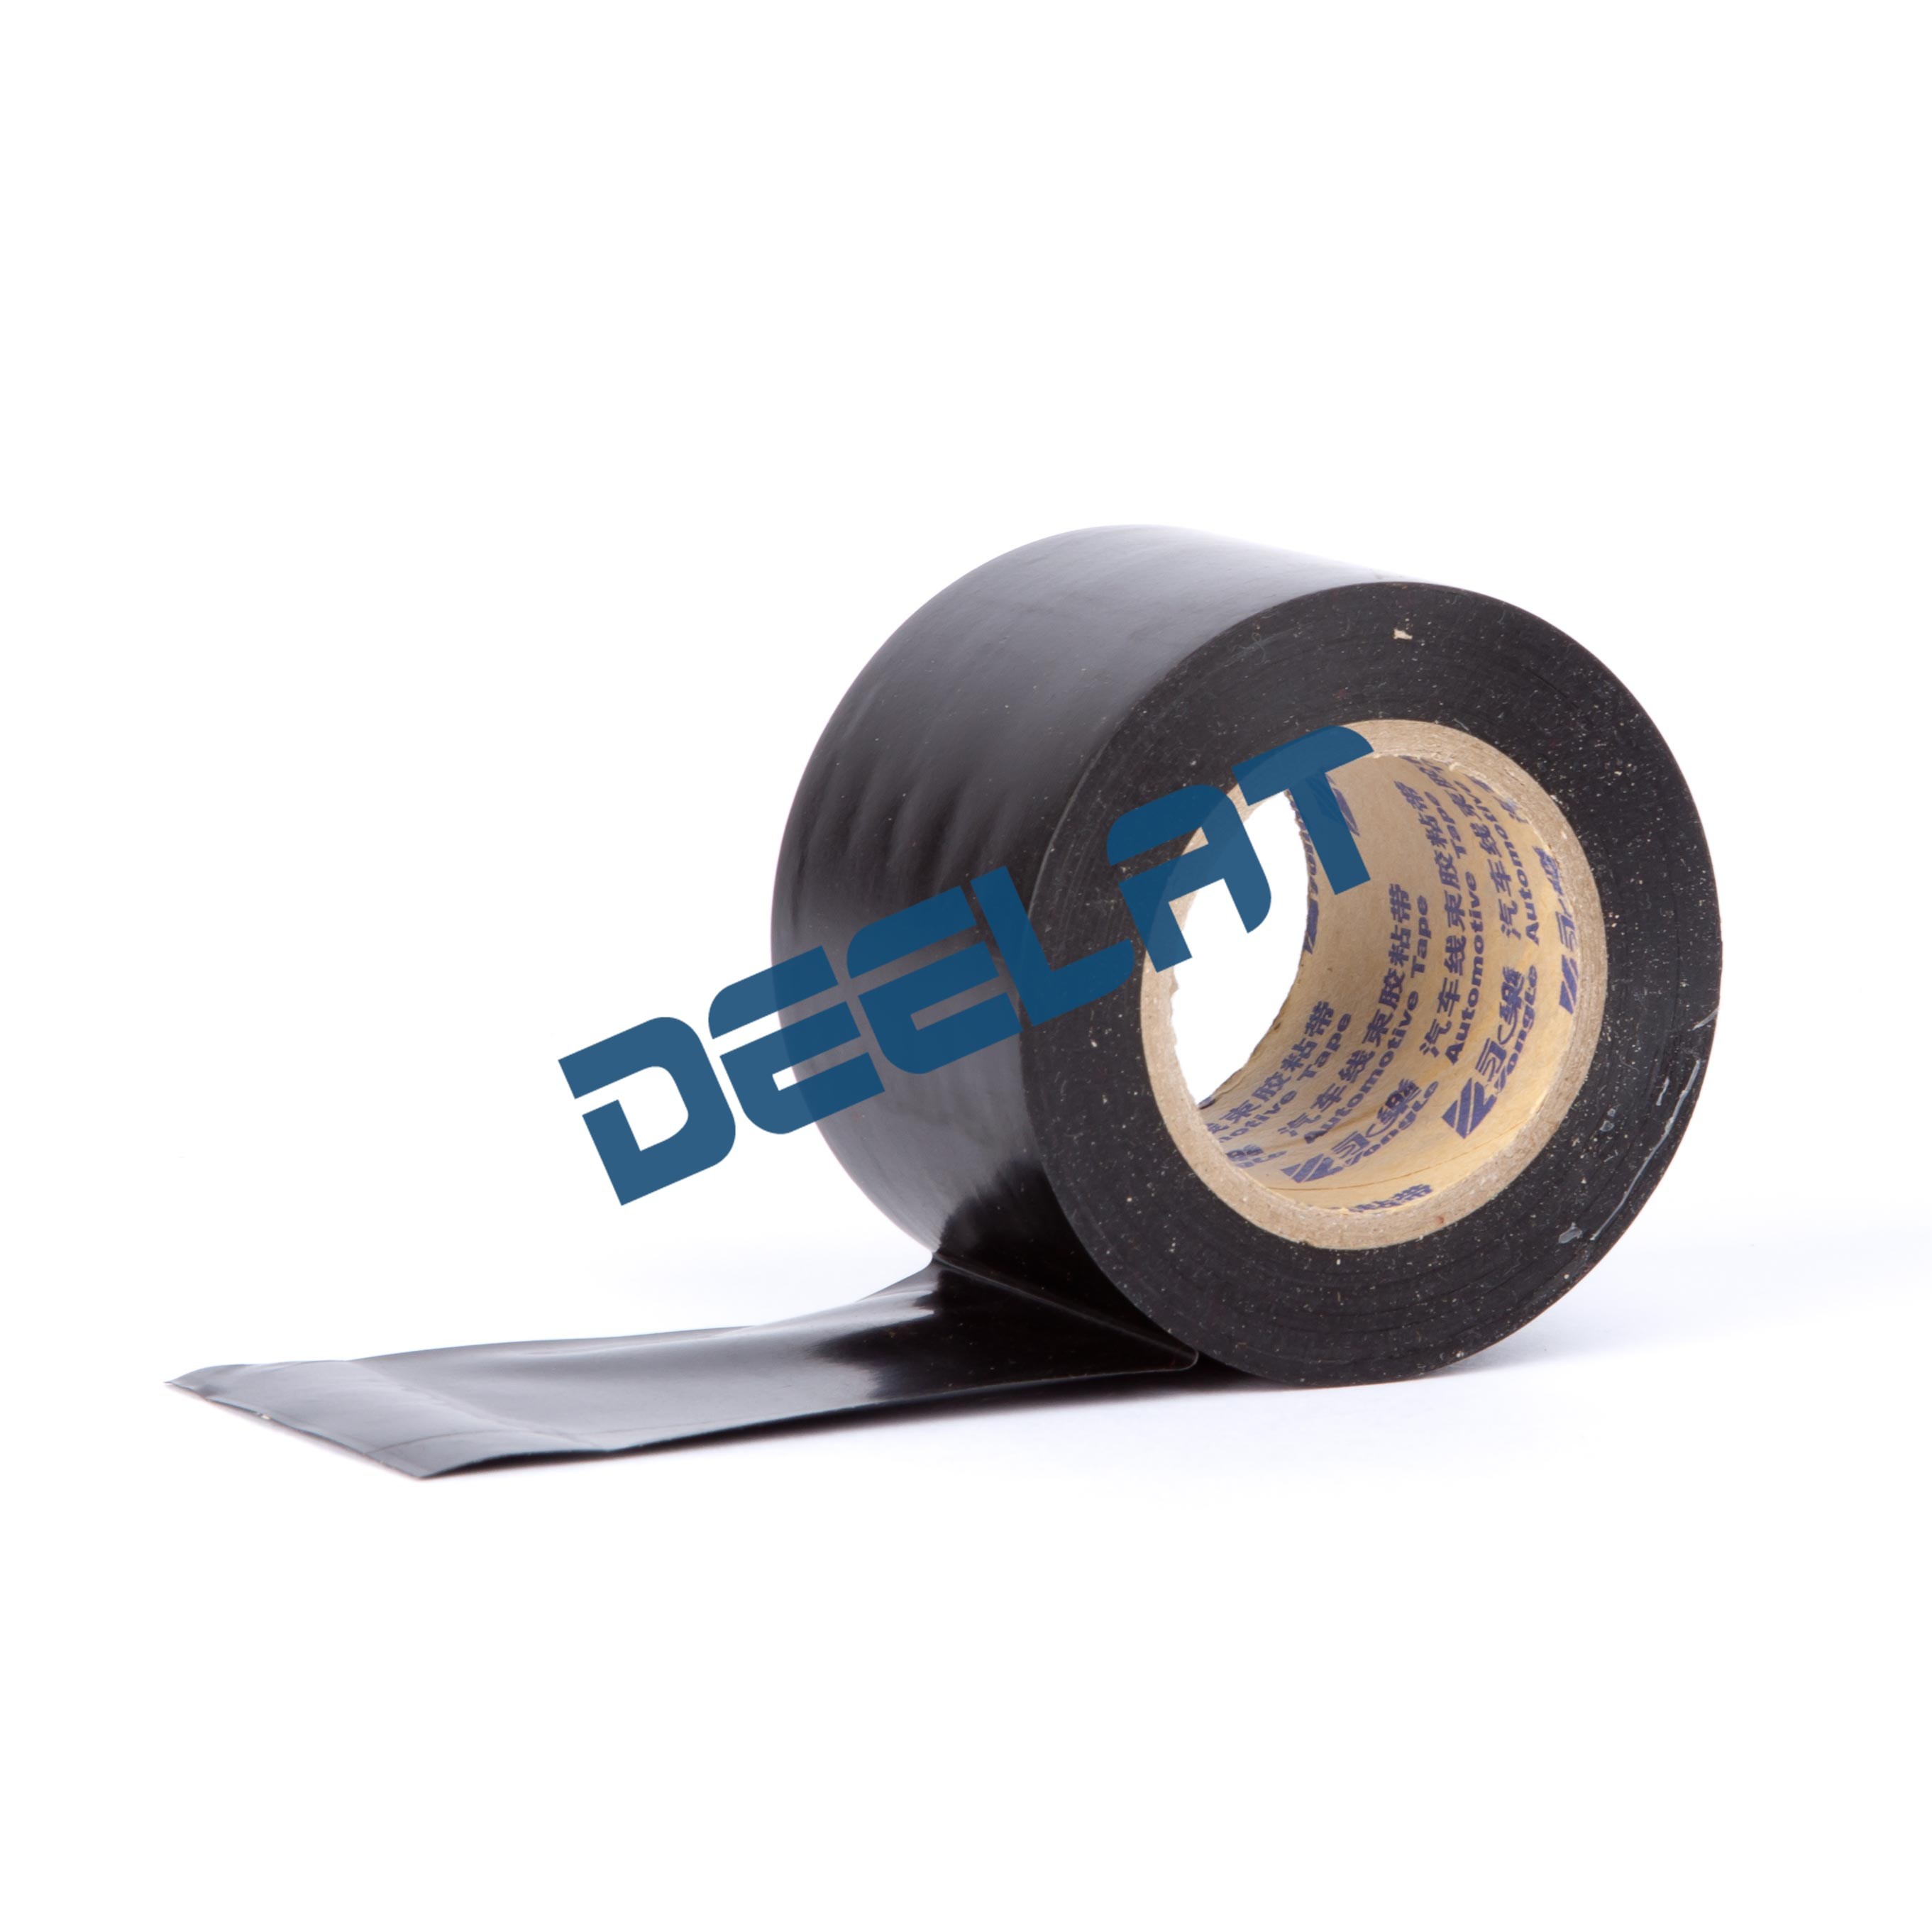 Auto IWre Harness Tape deelat blog automotive wire harness tape uses, types and auto wire harness tape at n-0.co